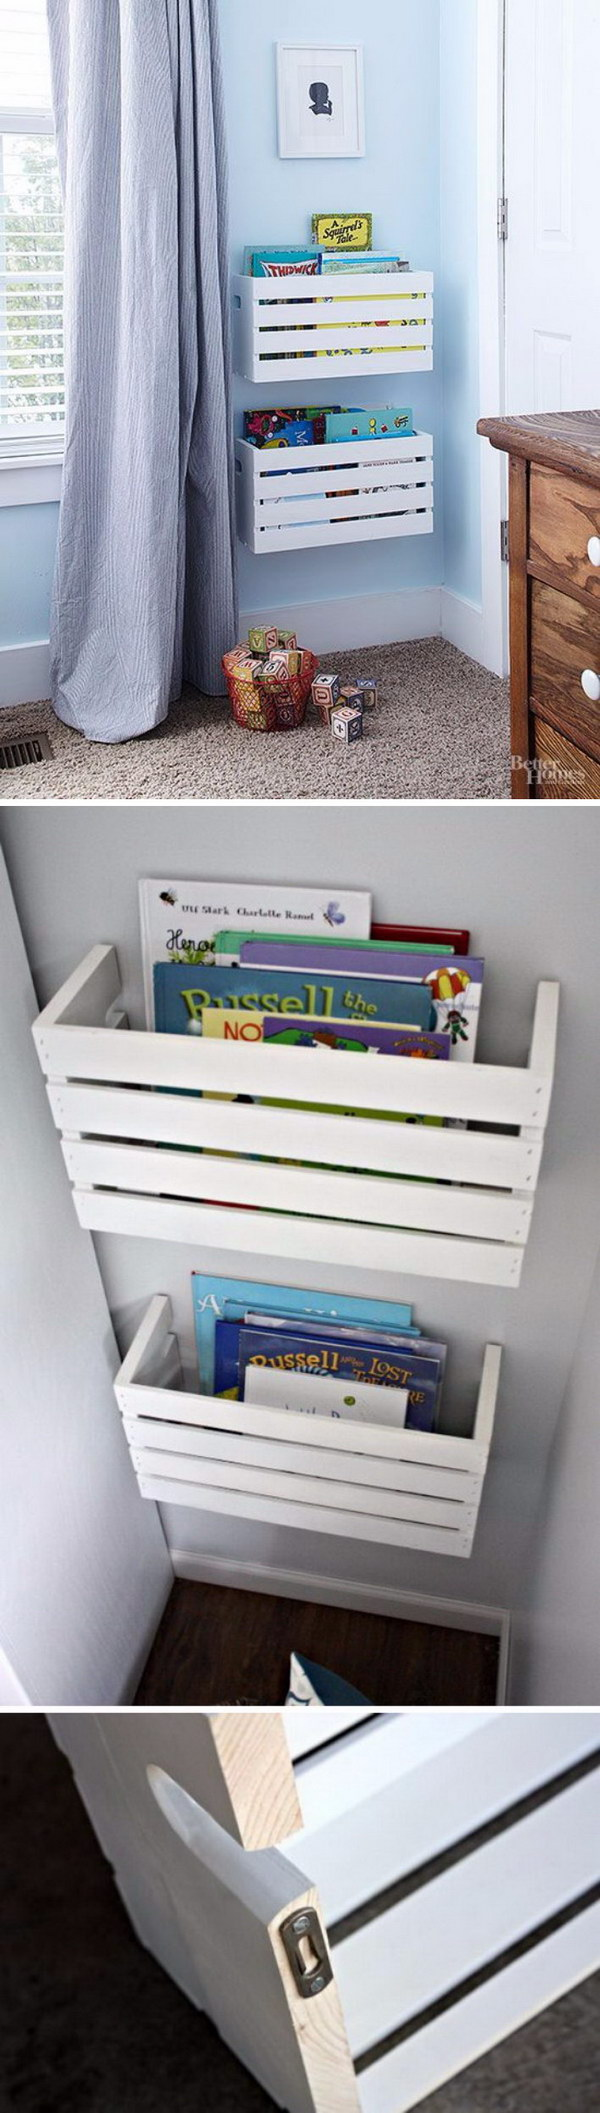 Make Great Crate Book Storage For Unused Wall Space